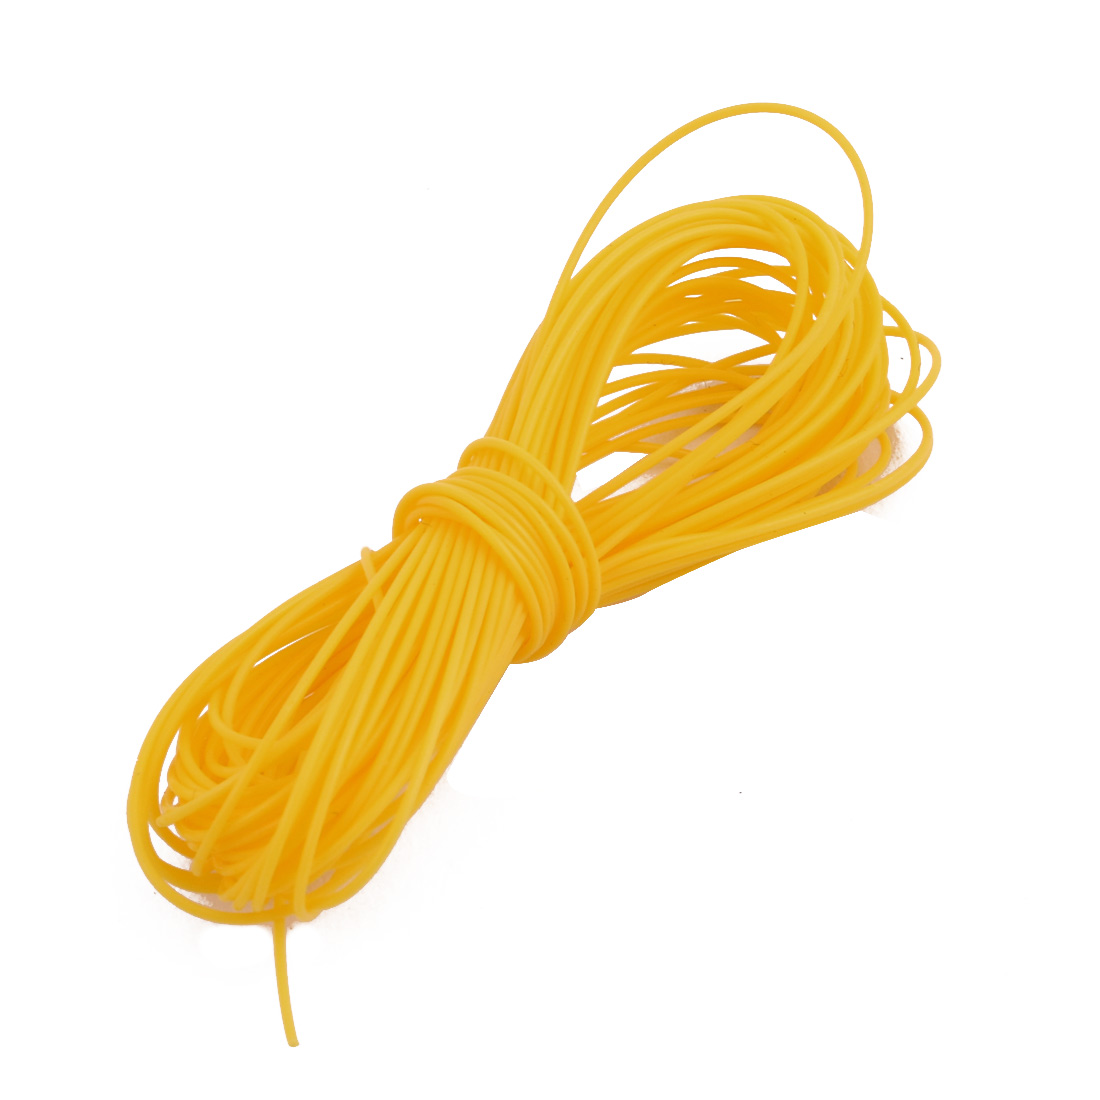 0.38mmx0.68mm PTFE Resistant High Temperature Yellow Tubing 5 Meters 16.4Ft